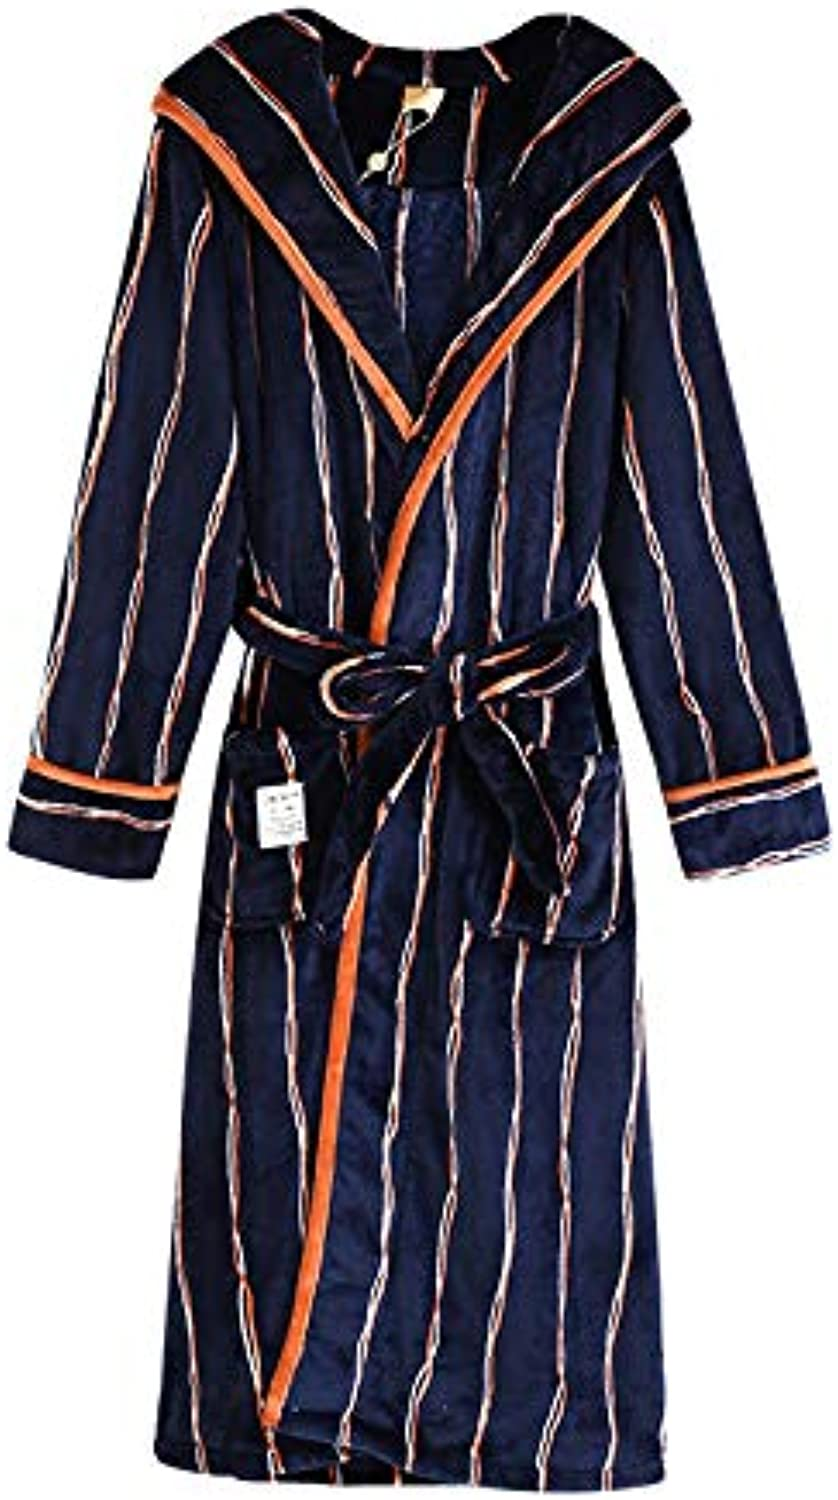 Robe Couples Robe Men's Long Thick Bathrobes Ladies Loose Cute Home Service Hooded Pocket Couple Pajamas (color   Dark bluee, Size   XXL)